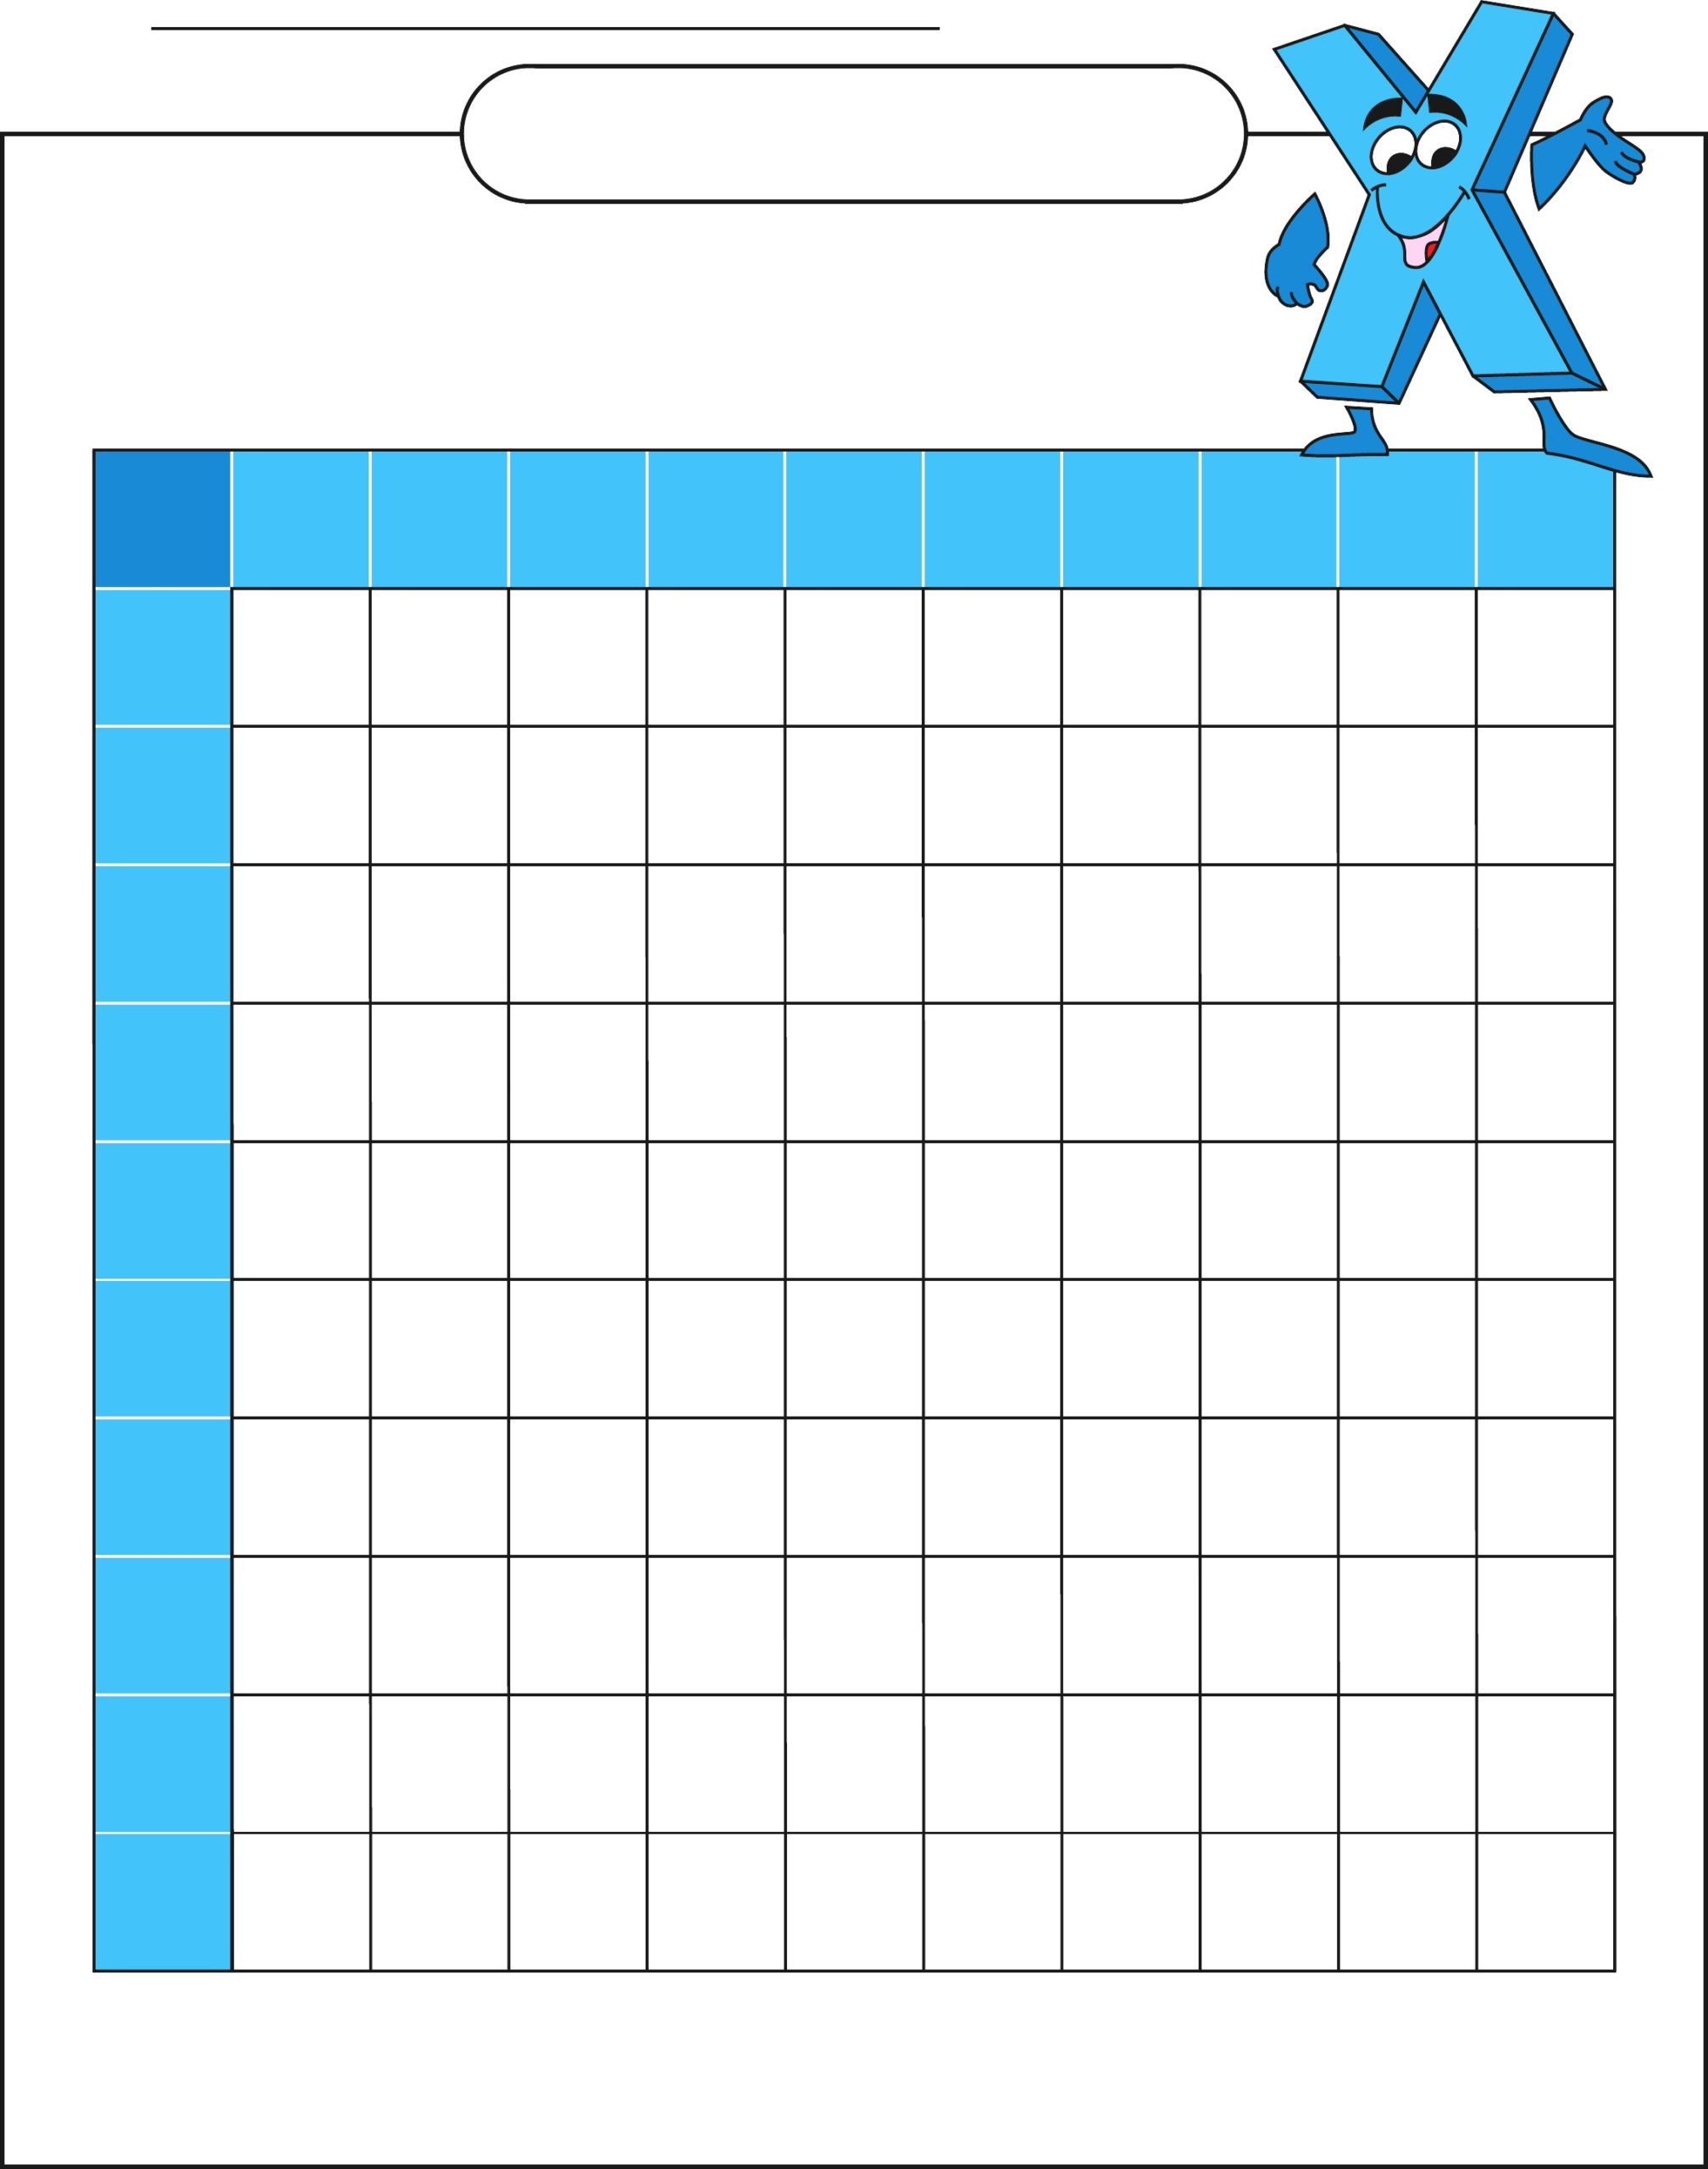 Blank Multiplication Chart Up To 10×10 For Math Table with regard to Printable Blank Multiplication Table 0-12